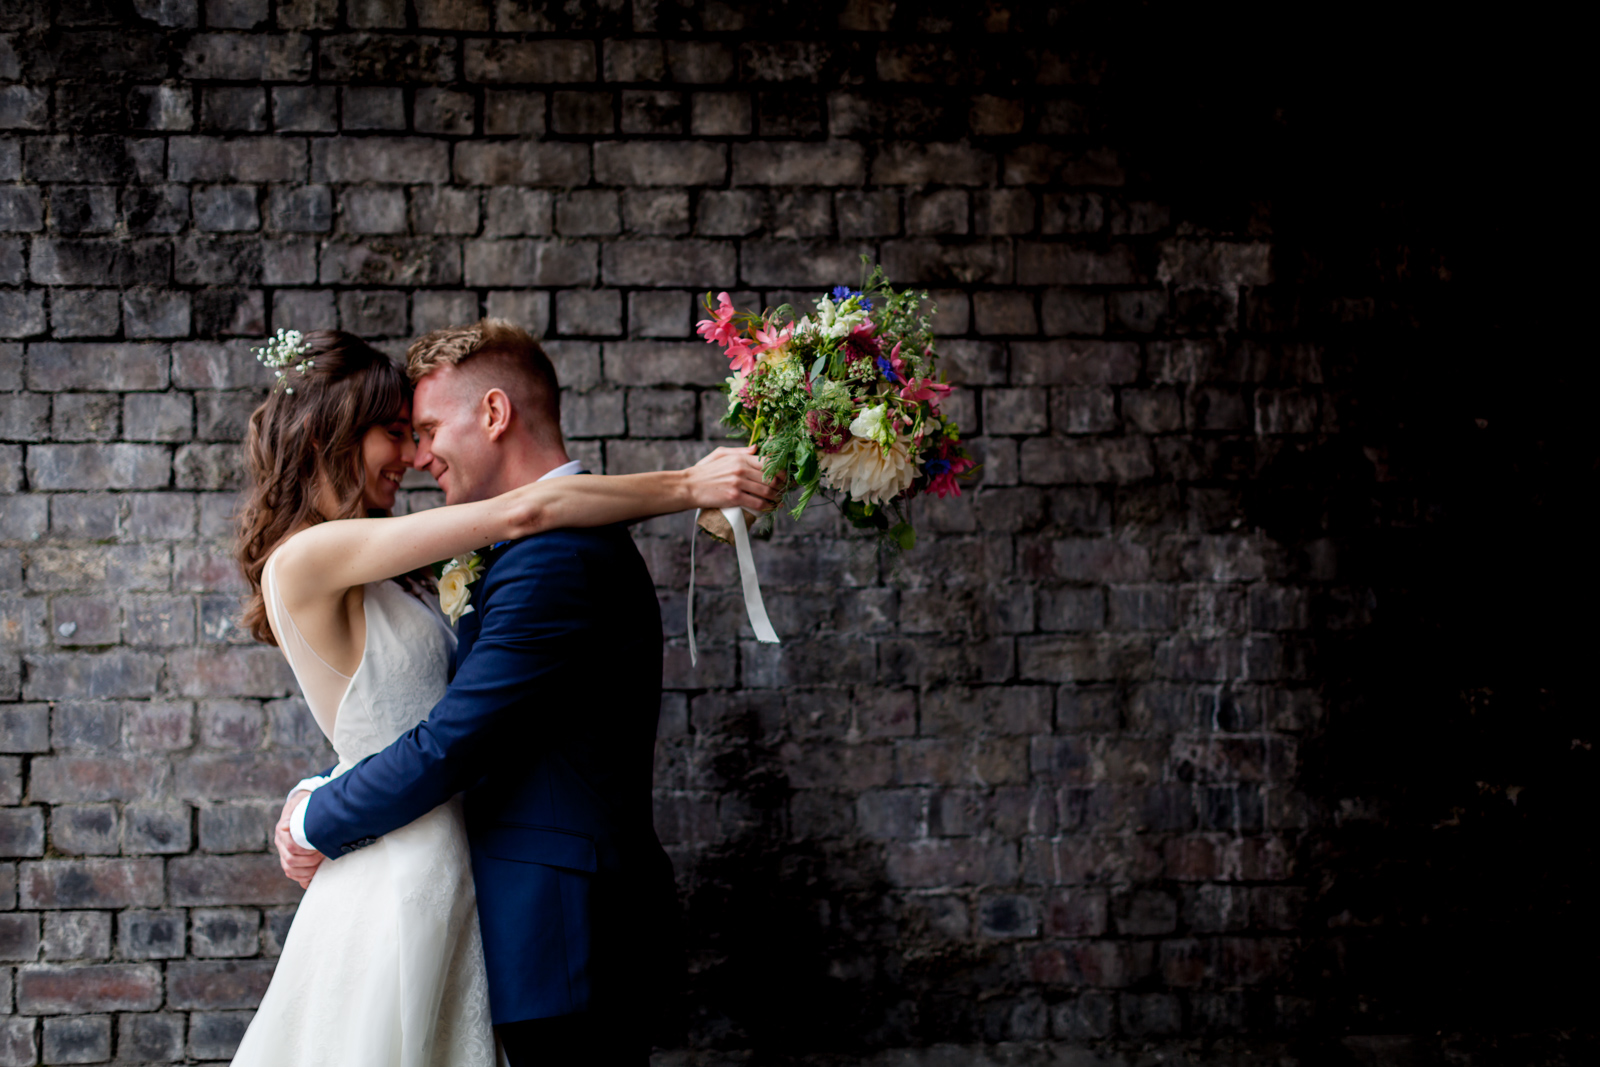 An Alternative wedding at The Brewhouse in London Fields